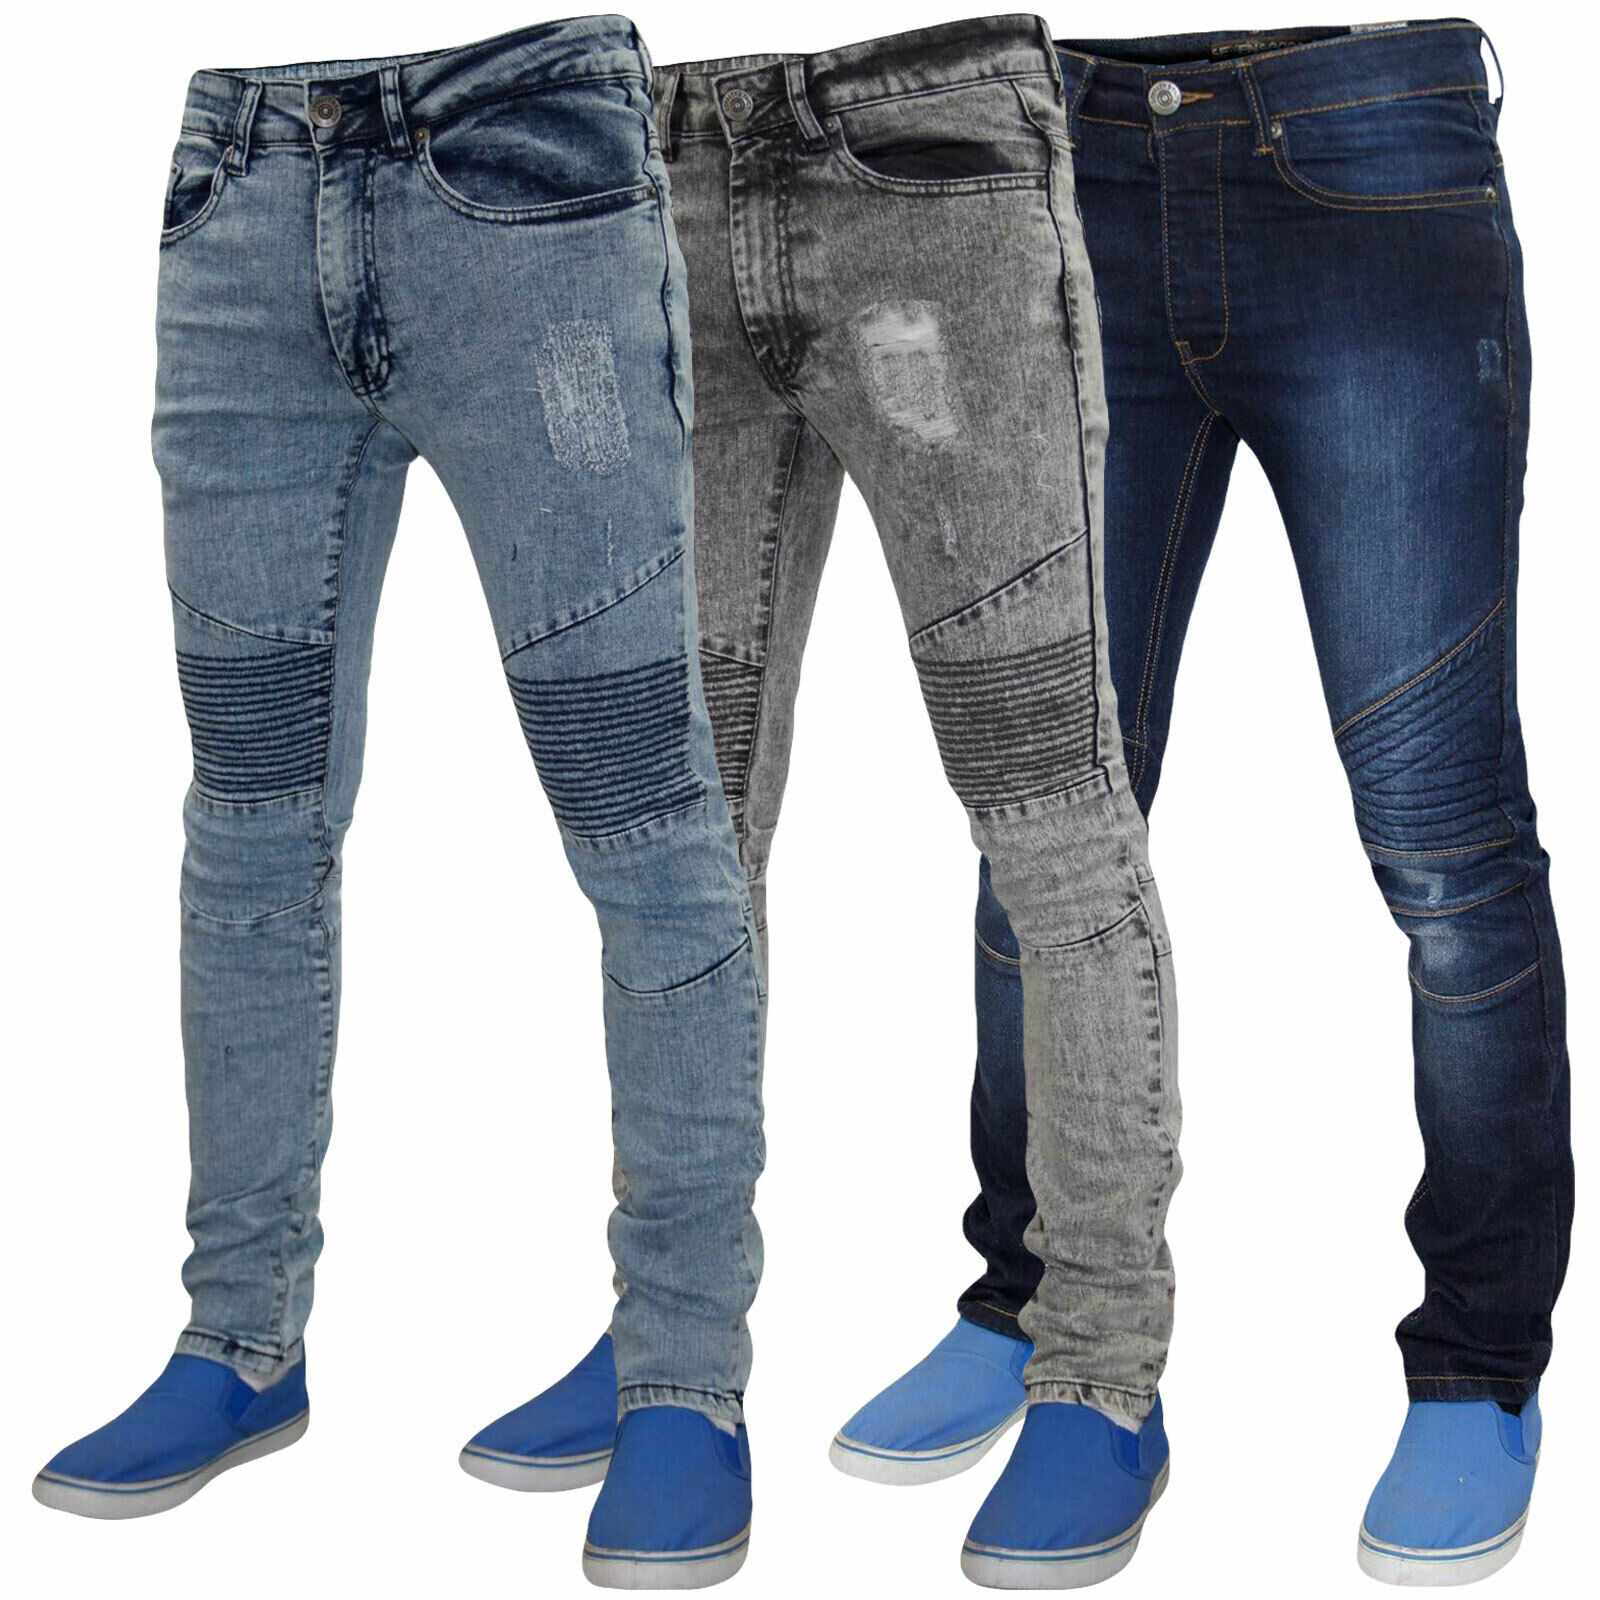 for sale affordable price 2019 factory price Details about Mens Skinny Jeans Ripped Super Stretch Slim Fit Denim Cotton  Biker Trousers Pant